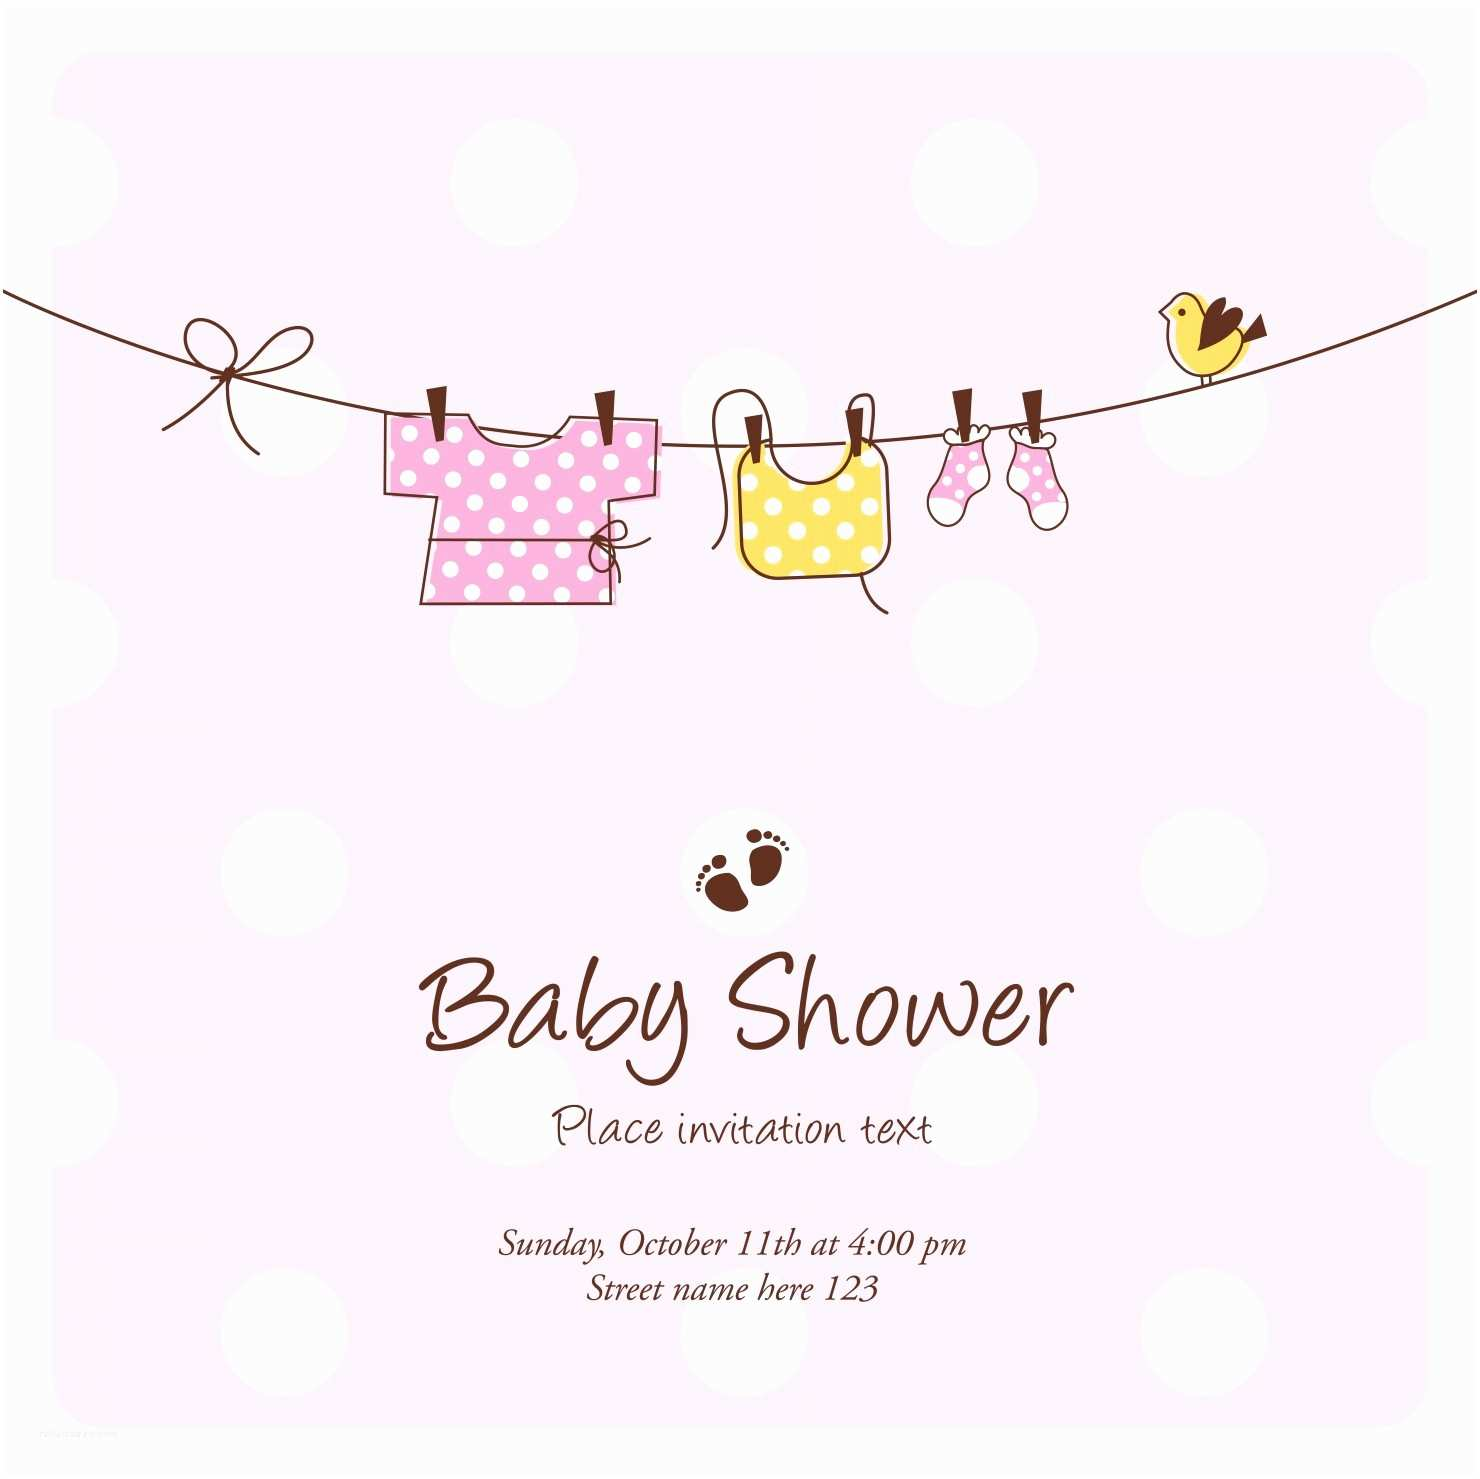 Baby Shower Invitation Cards Baby Shower Invitations the 25 Best Cards • Elsoar